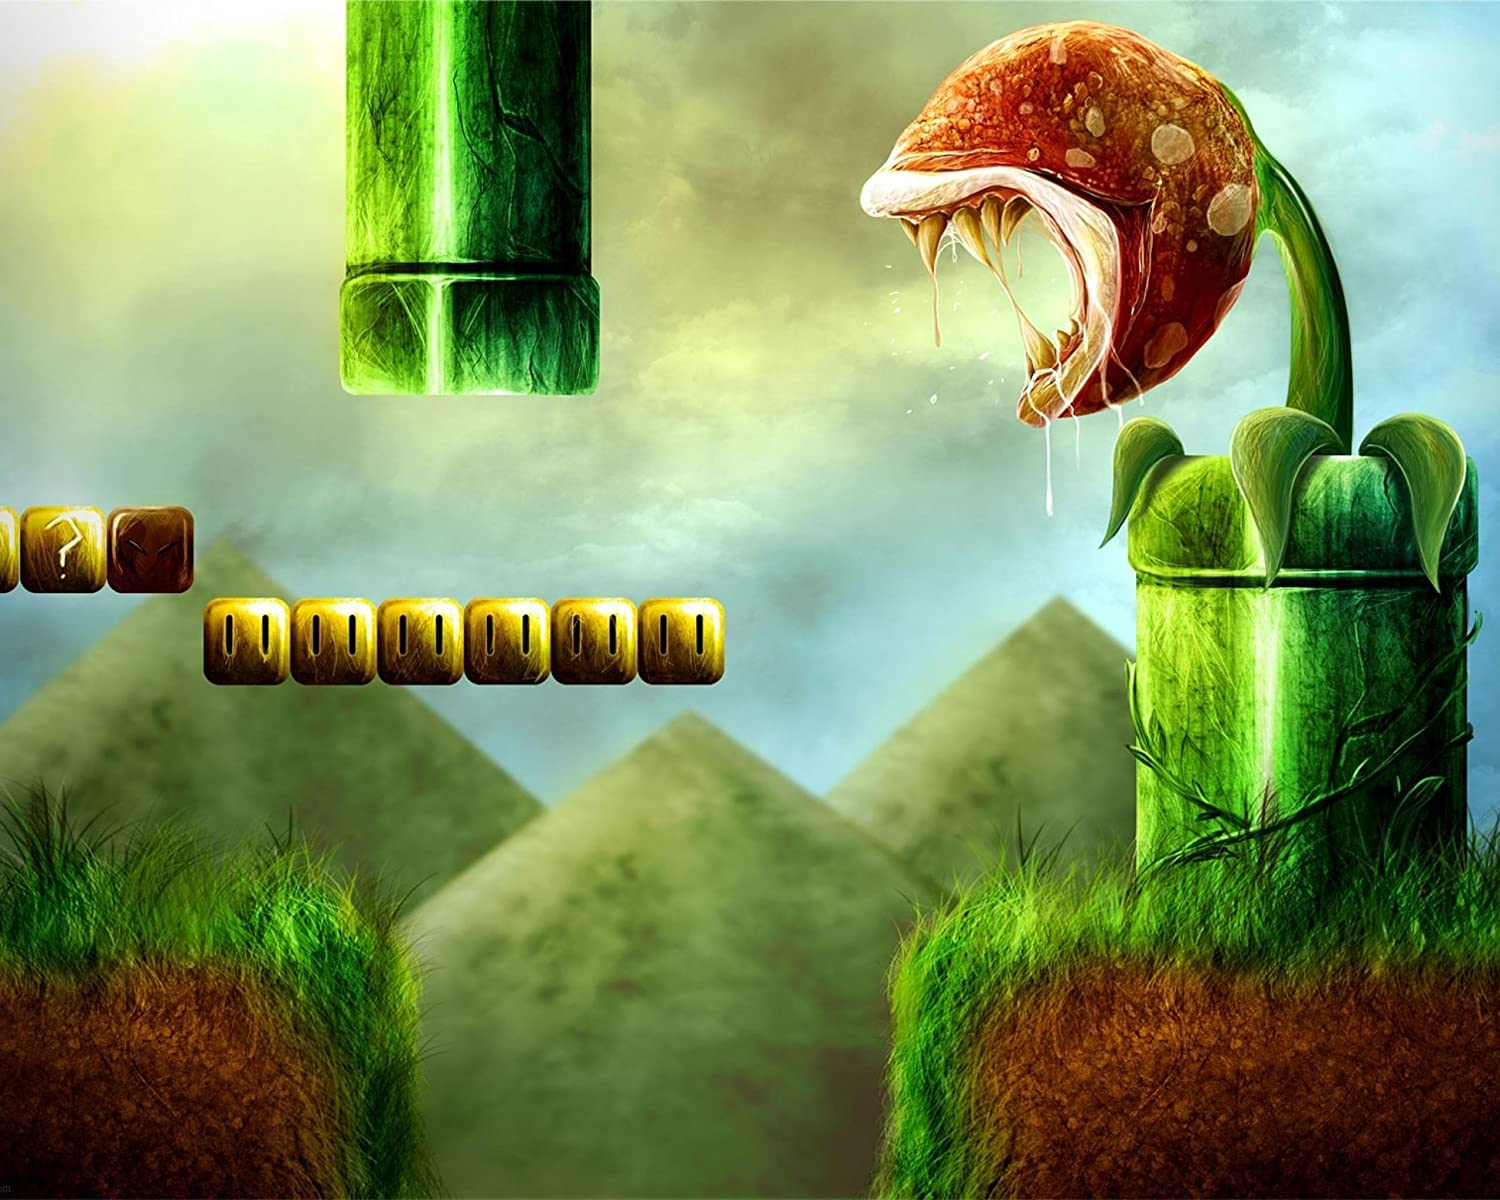 HiddenSupplies Piranha Plant Real + Free RFG Sleeves 75 Count Standard Size